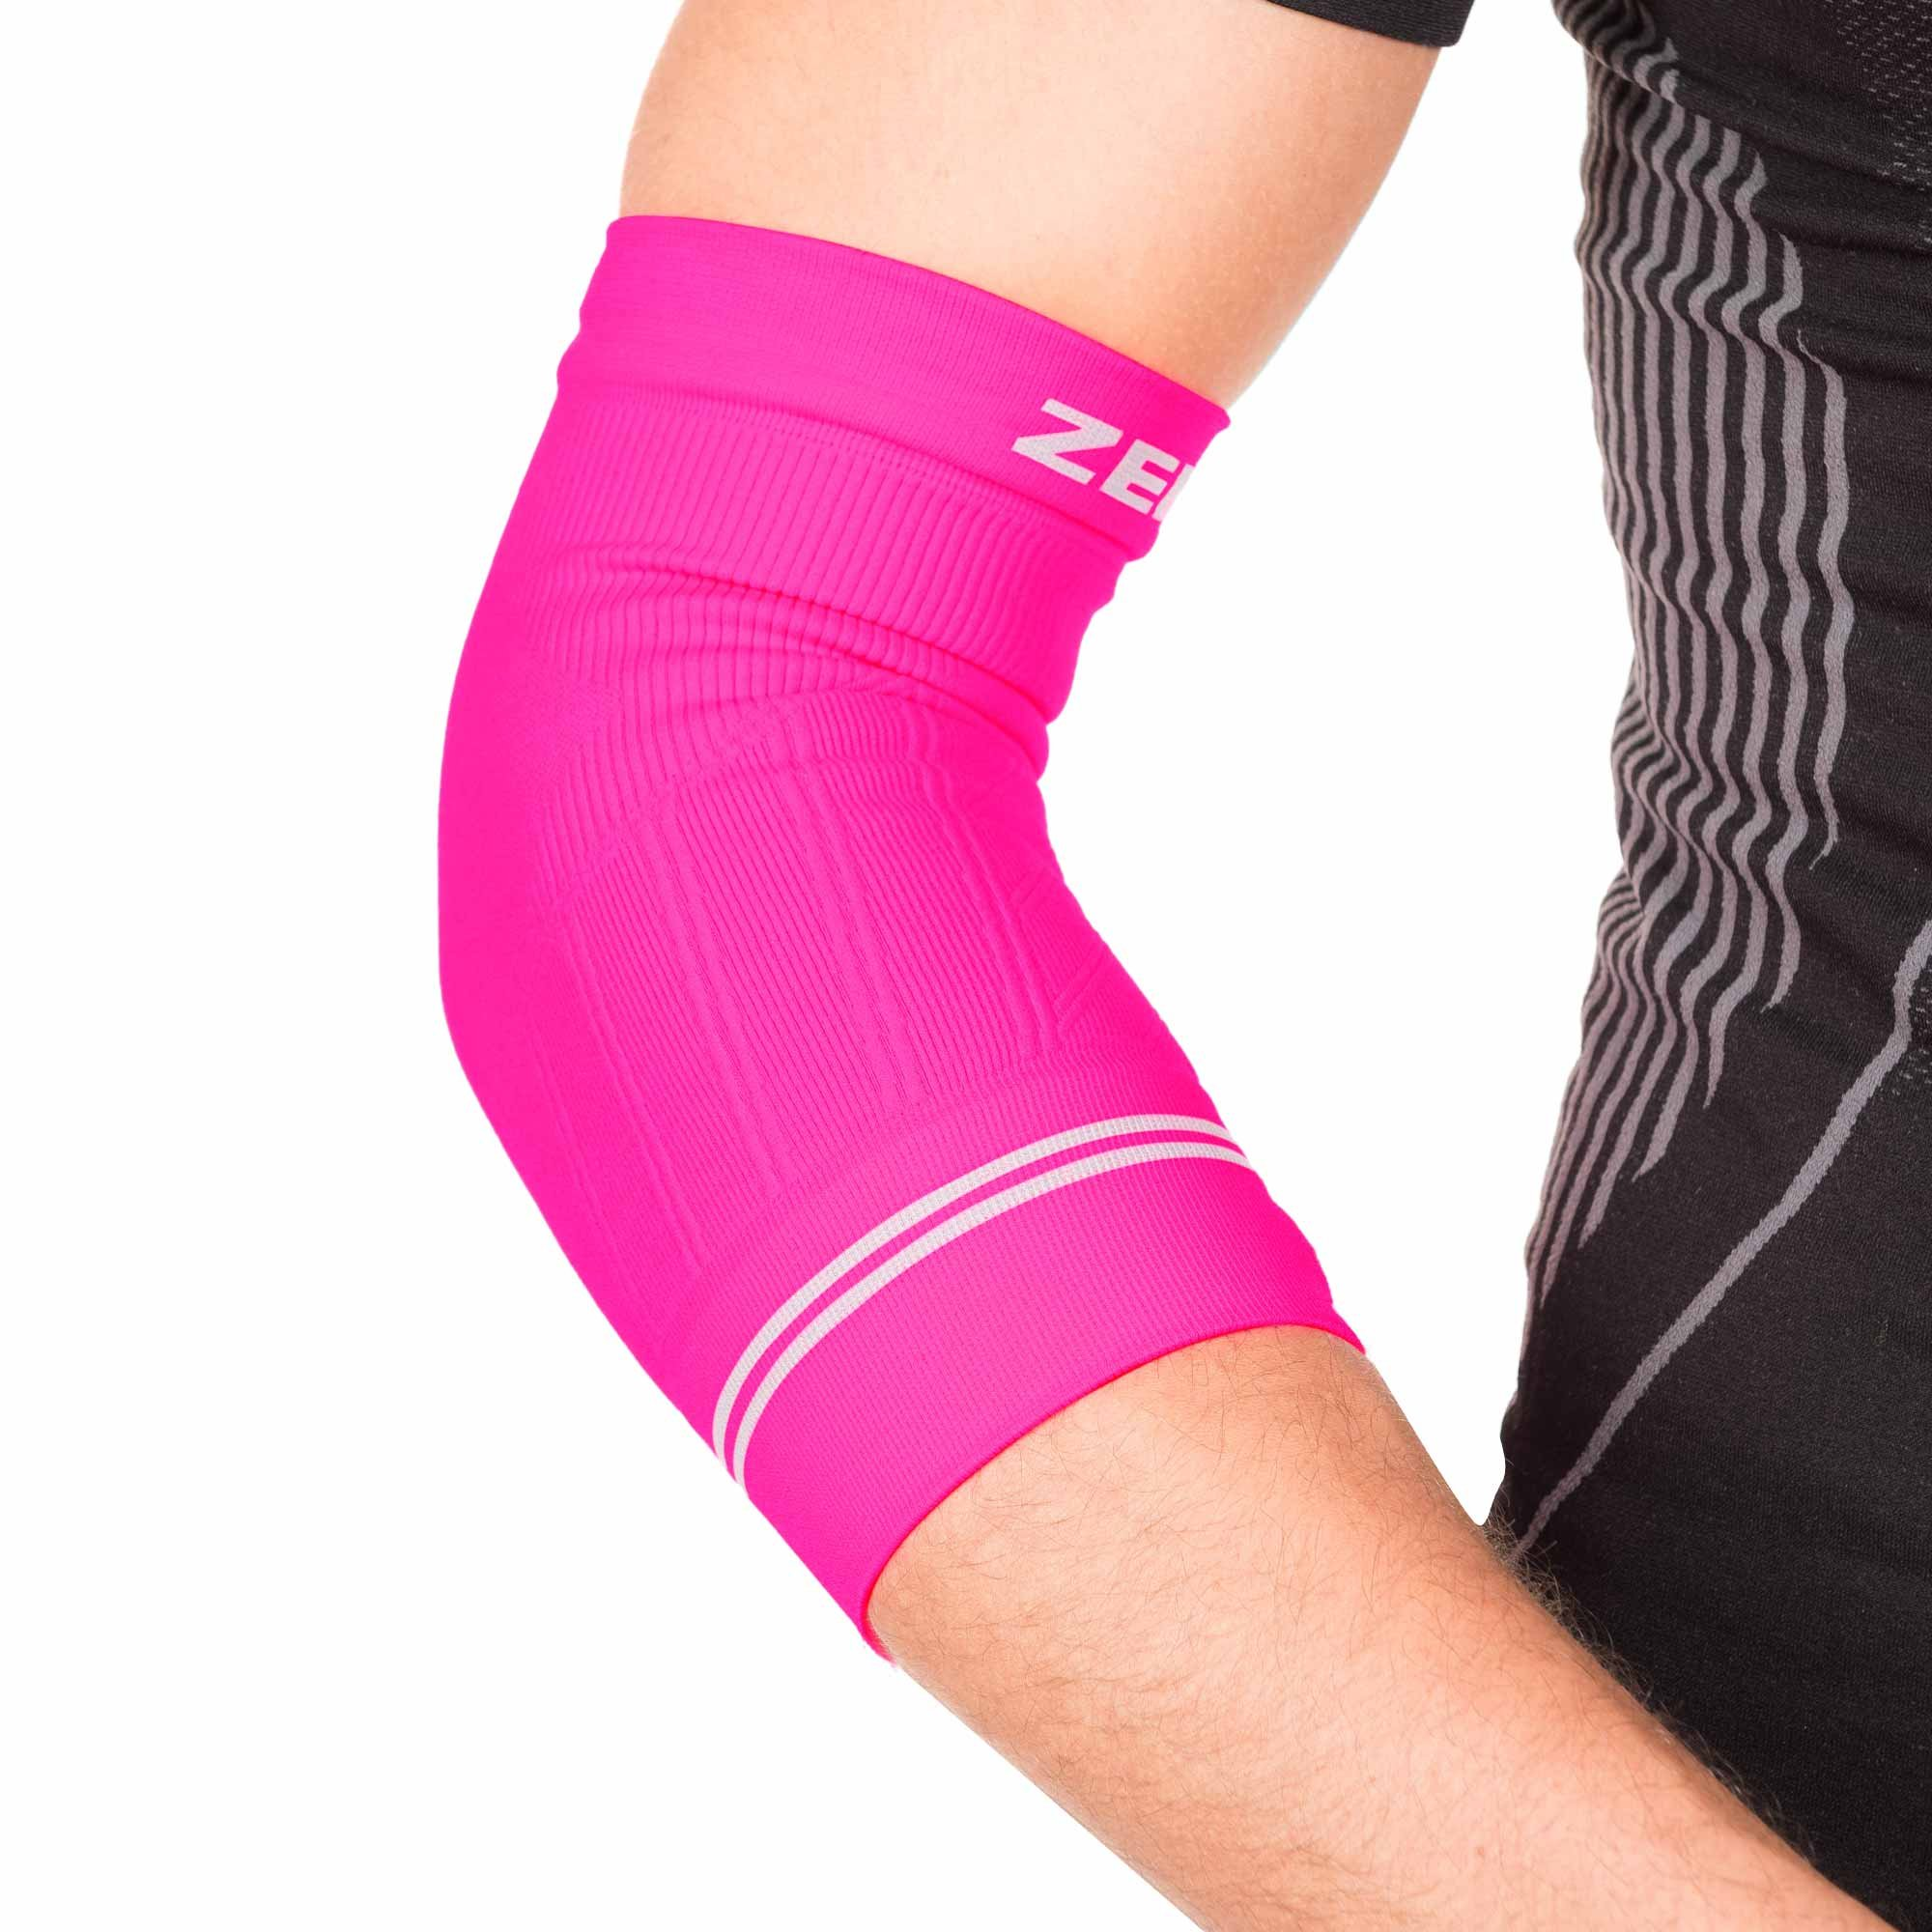 Zensah Compression Tennis Elbow Sleeve for Elbow Tendonitis, Tennis Elbow, Golfer's Elbow - Elbow Support, Elbow Brace,Small,Neon Pink by Zensah